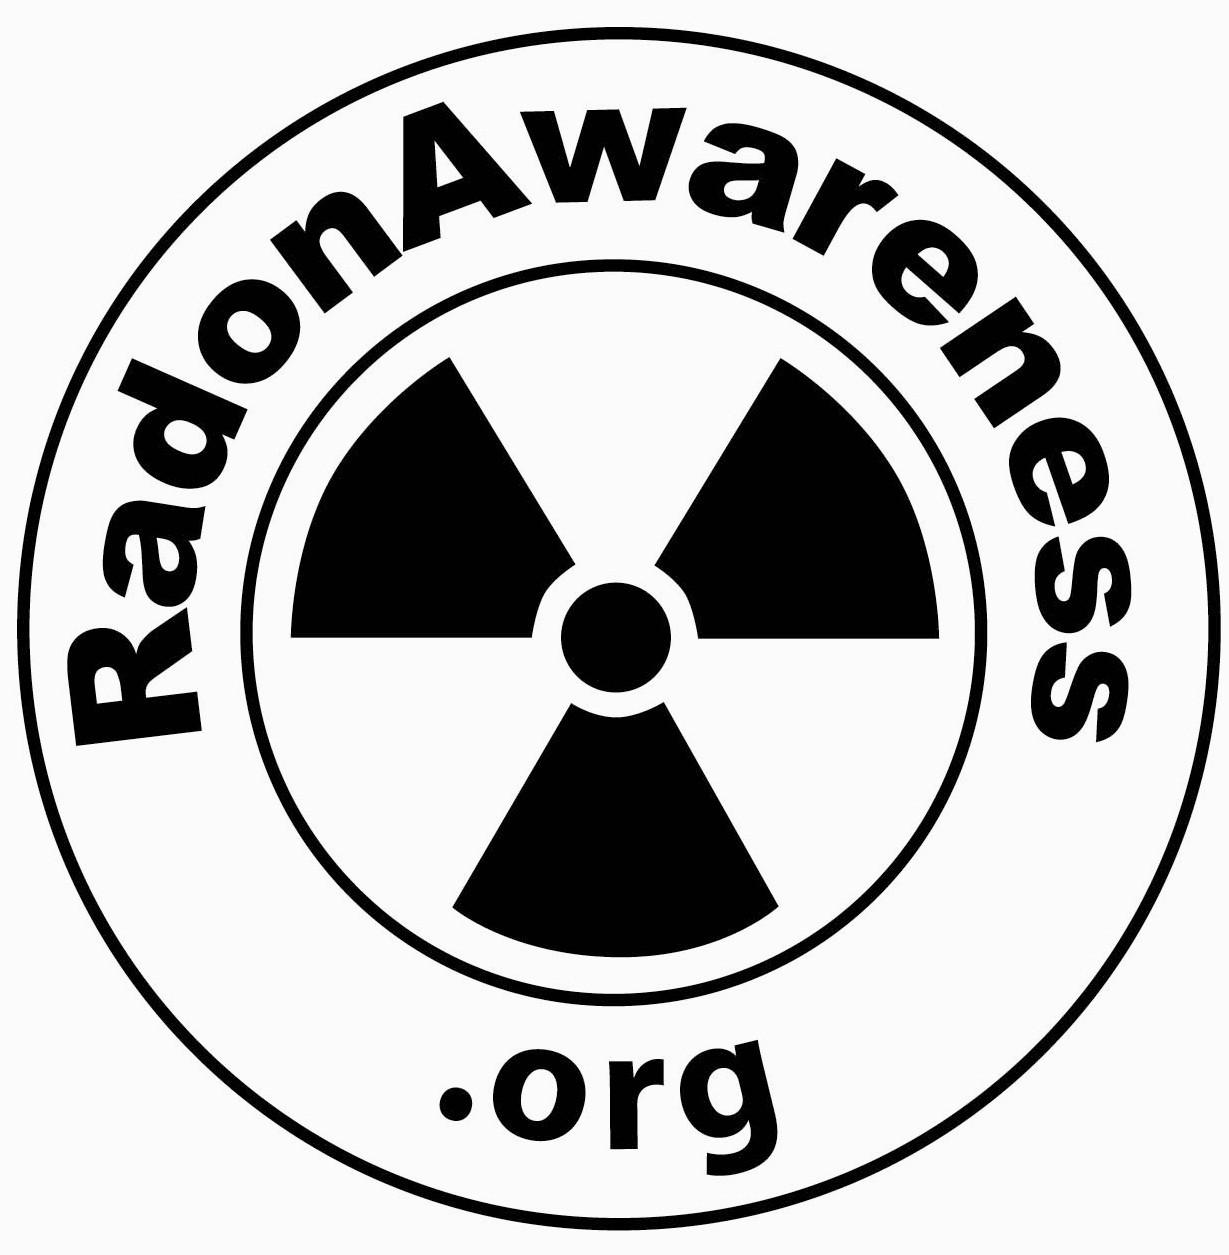 quad cities (eastern iowa and western illinois) radon mitigation, radon testing and radon removal company located in eldridge, iowa